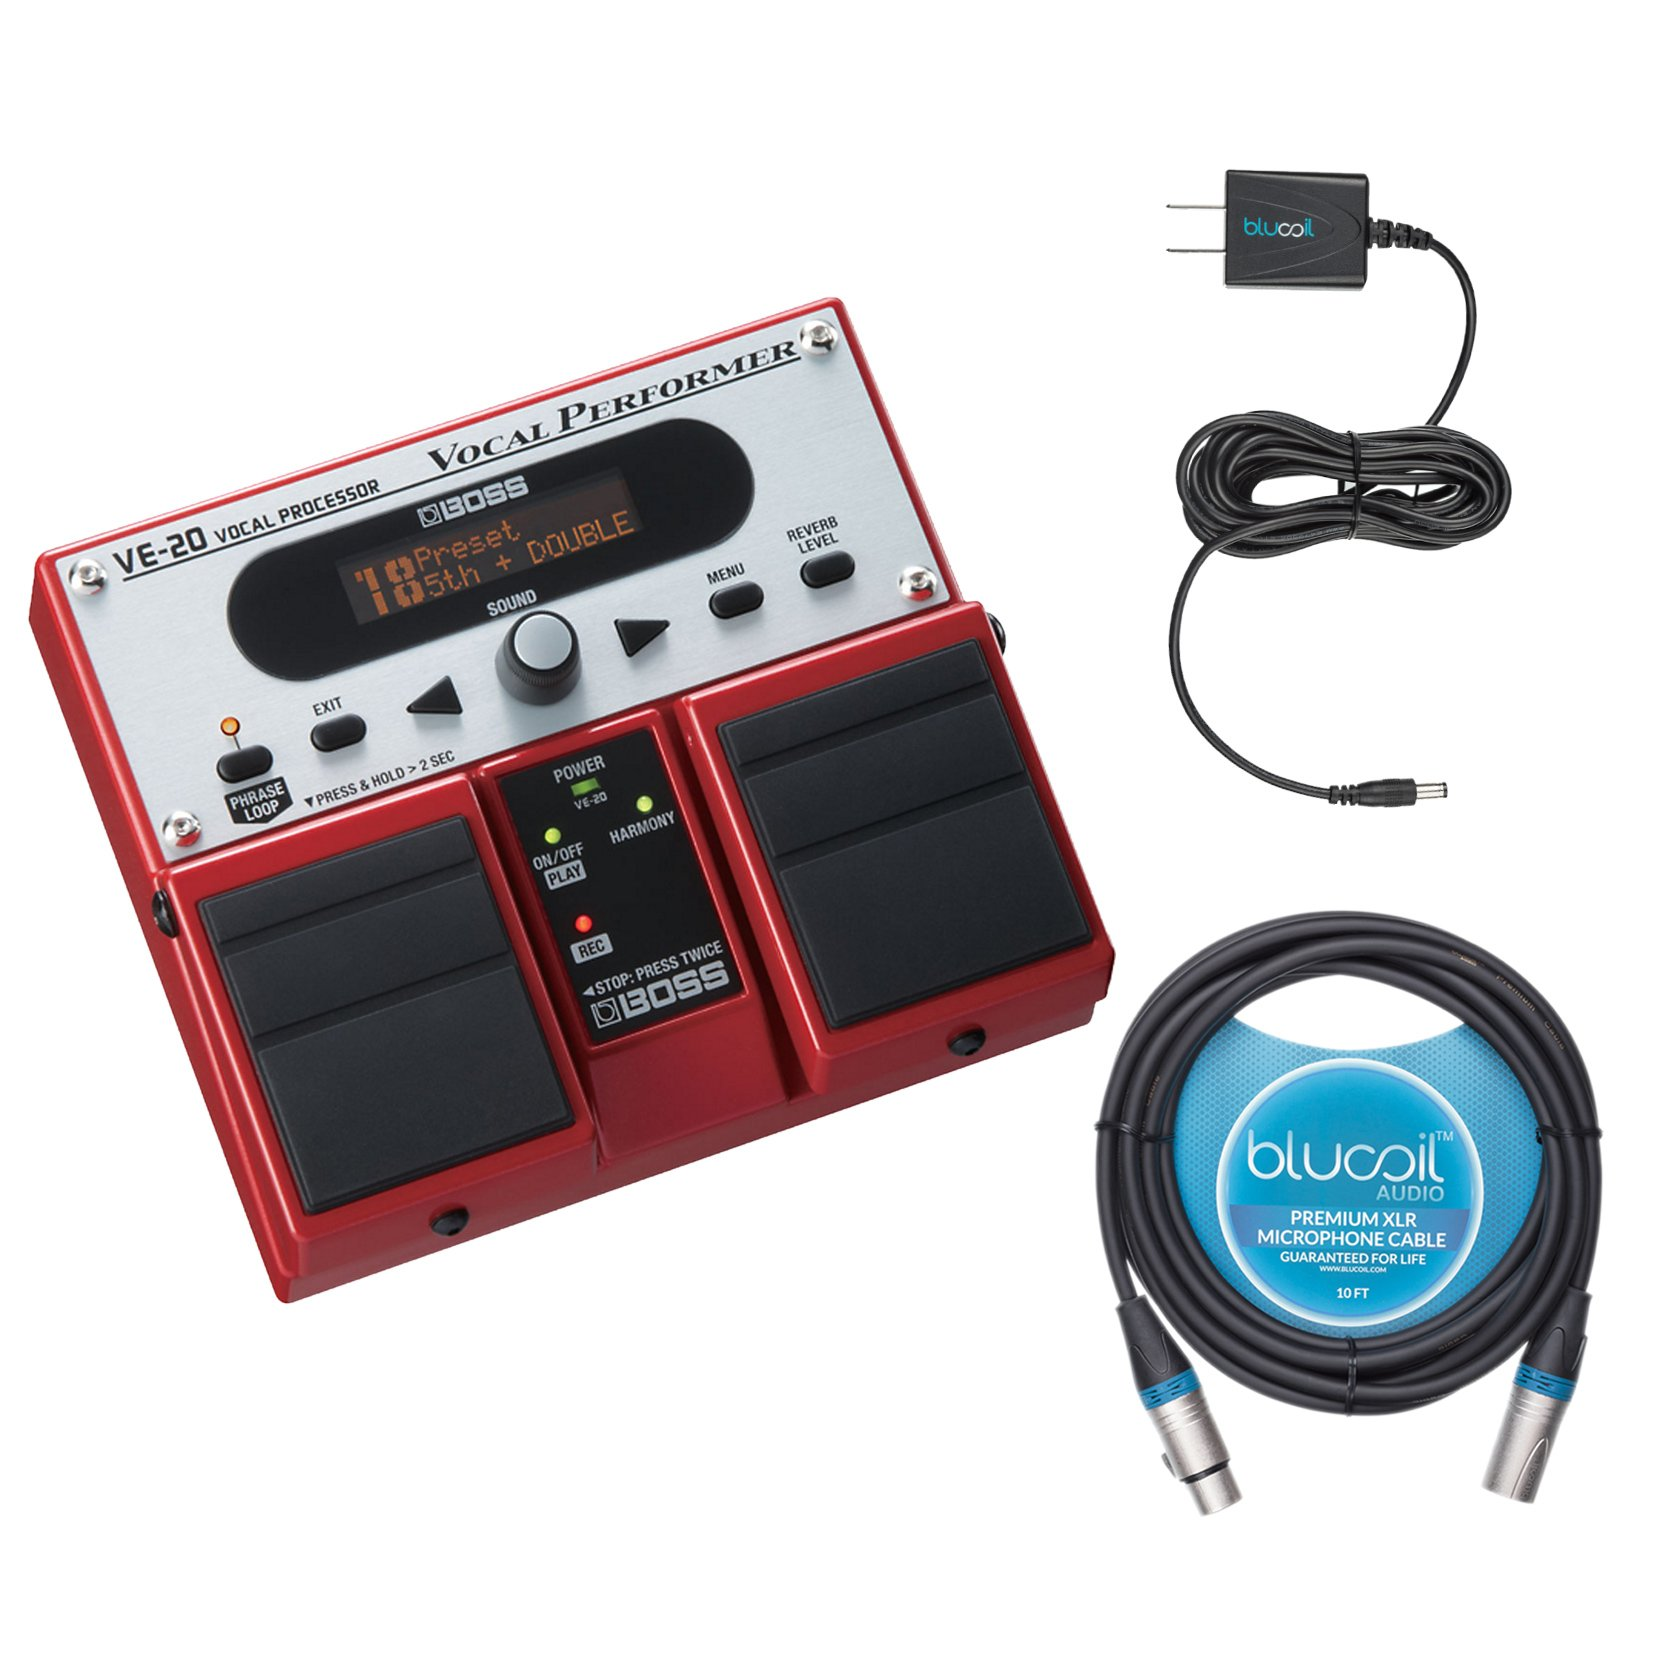 B​oss ​VE​-​20 Vocal Processor Multi Effects Pedal -INCLUDES- Blucoil Power Supply Slim AC/DC Adapter 9V DC 670mA with US Plug AND 10' XLR Microphone Cable